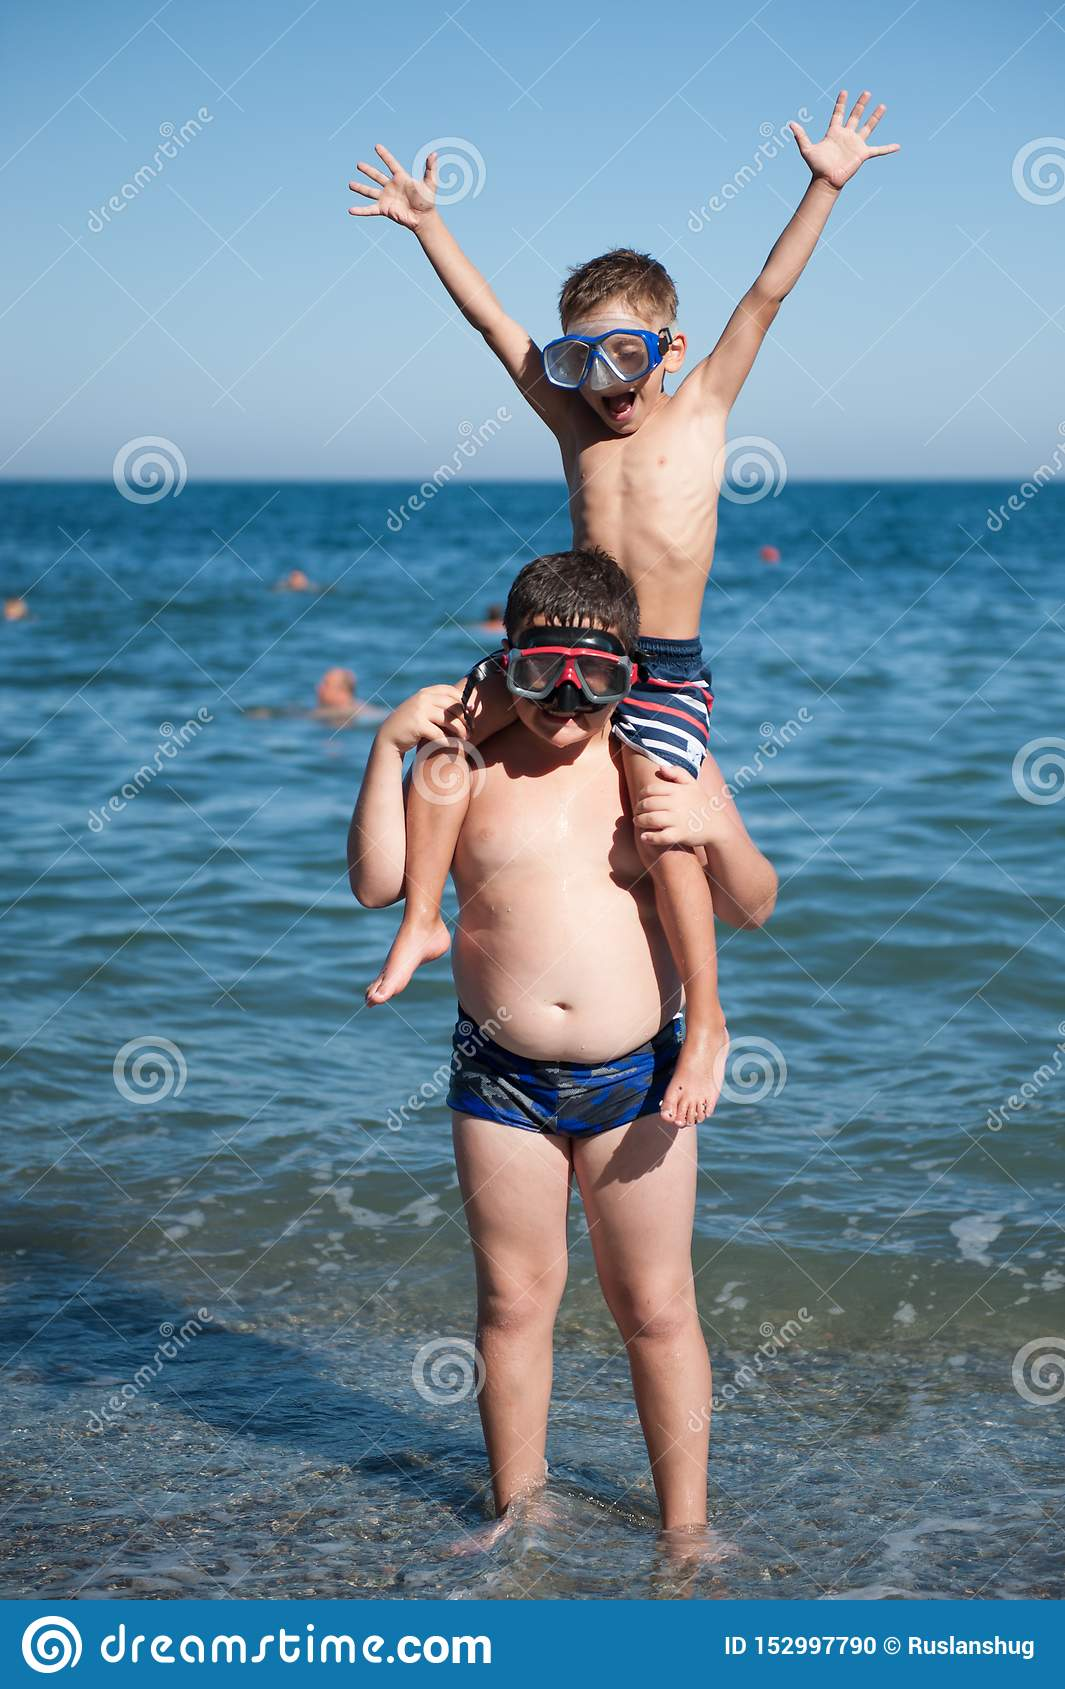 Funny Fat Kid On Beach : funny, beach, Happy, Active, Funny, Sport, Little, Sitting, Thick, Child, Diving, Shoulders, Standing, Summer, Sunny, Beach, During, Stock, Photo, Image, Leisure,, Activity:, 152997790